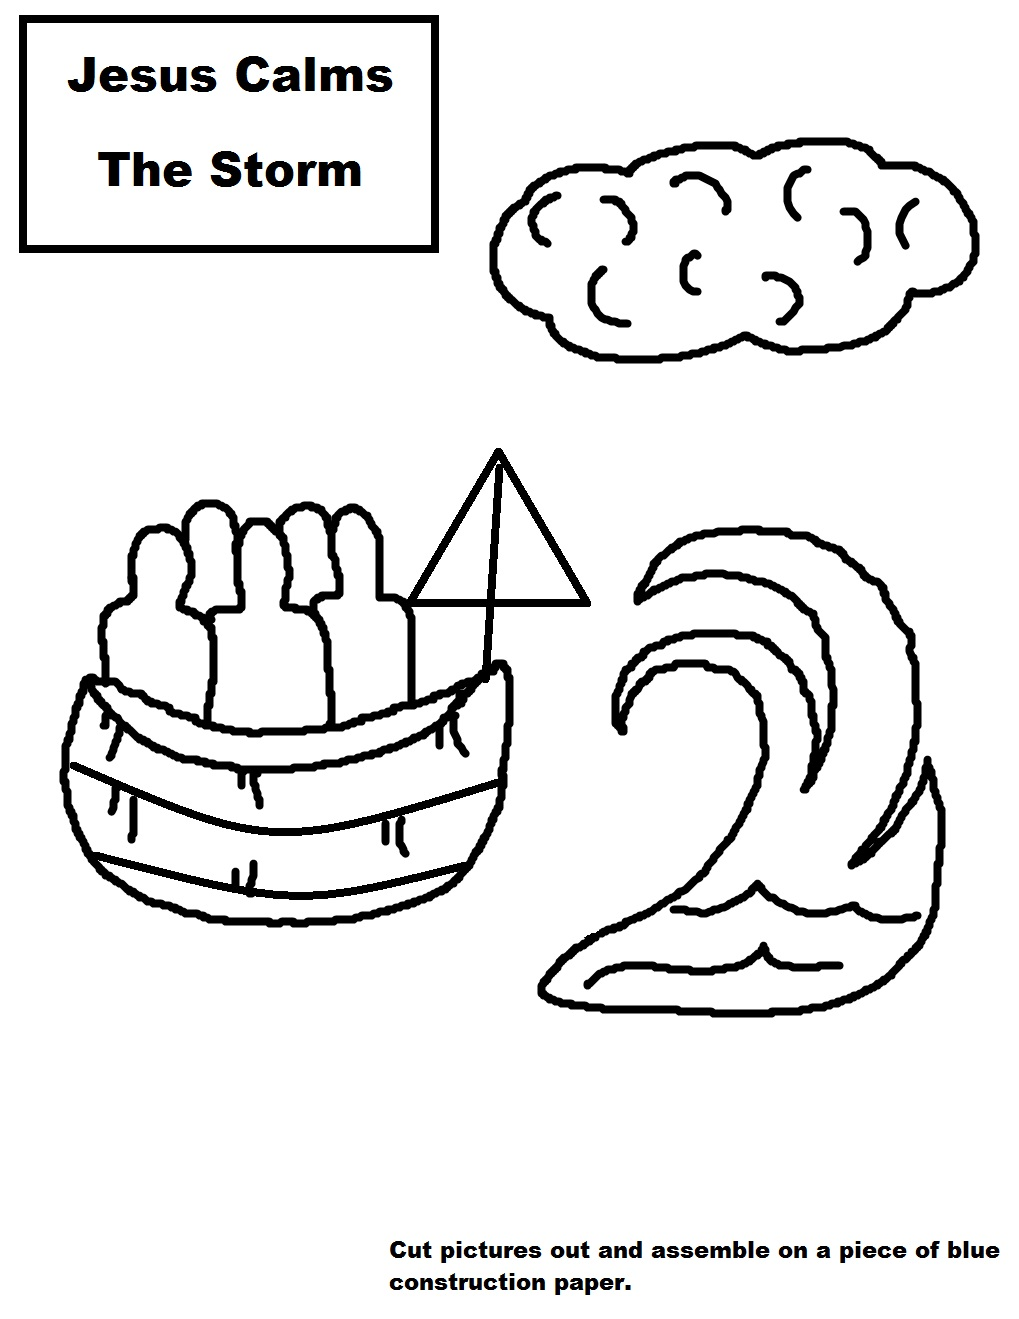 Jesus Calms The Storm Coloring Page At Getdrawings Com Free For